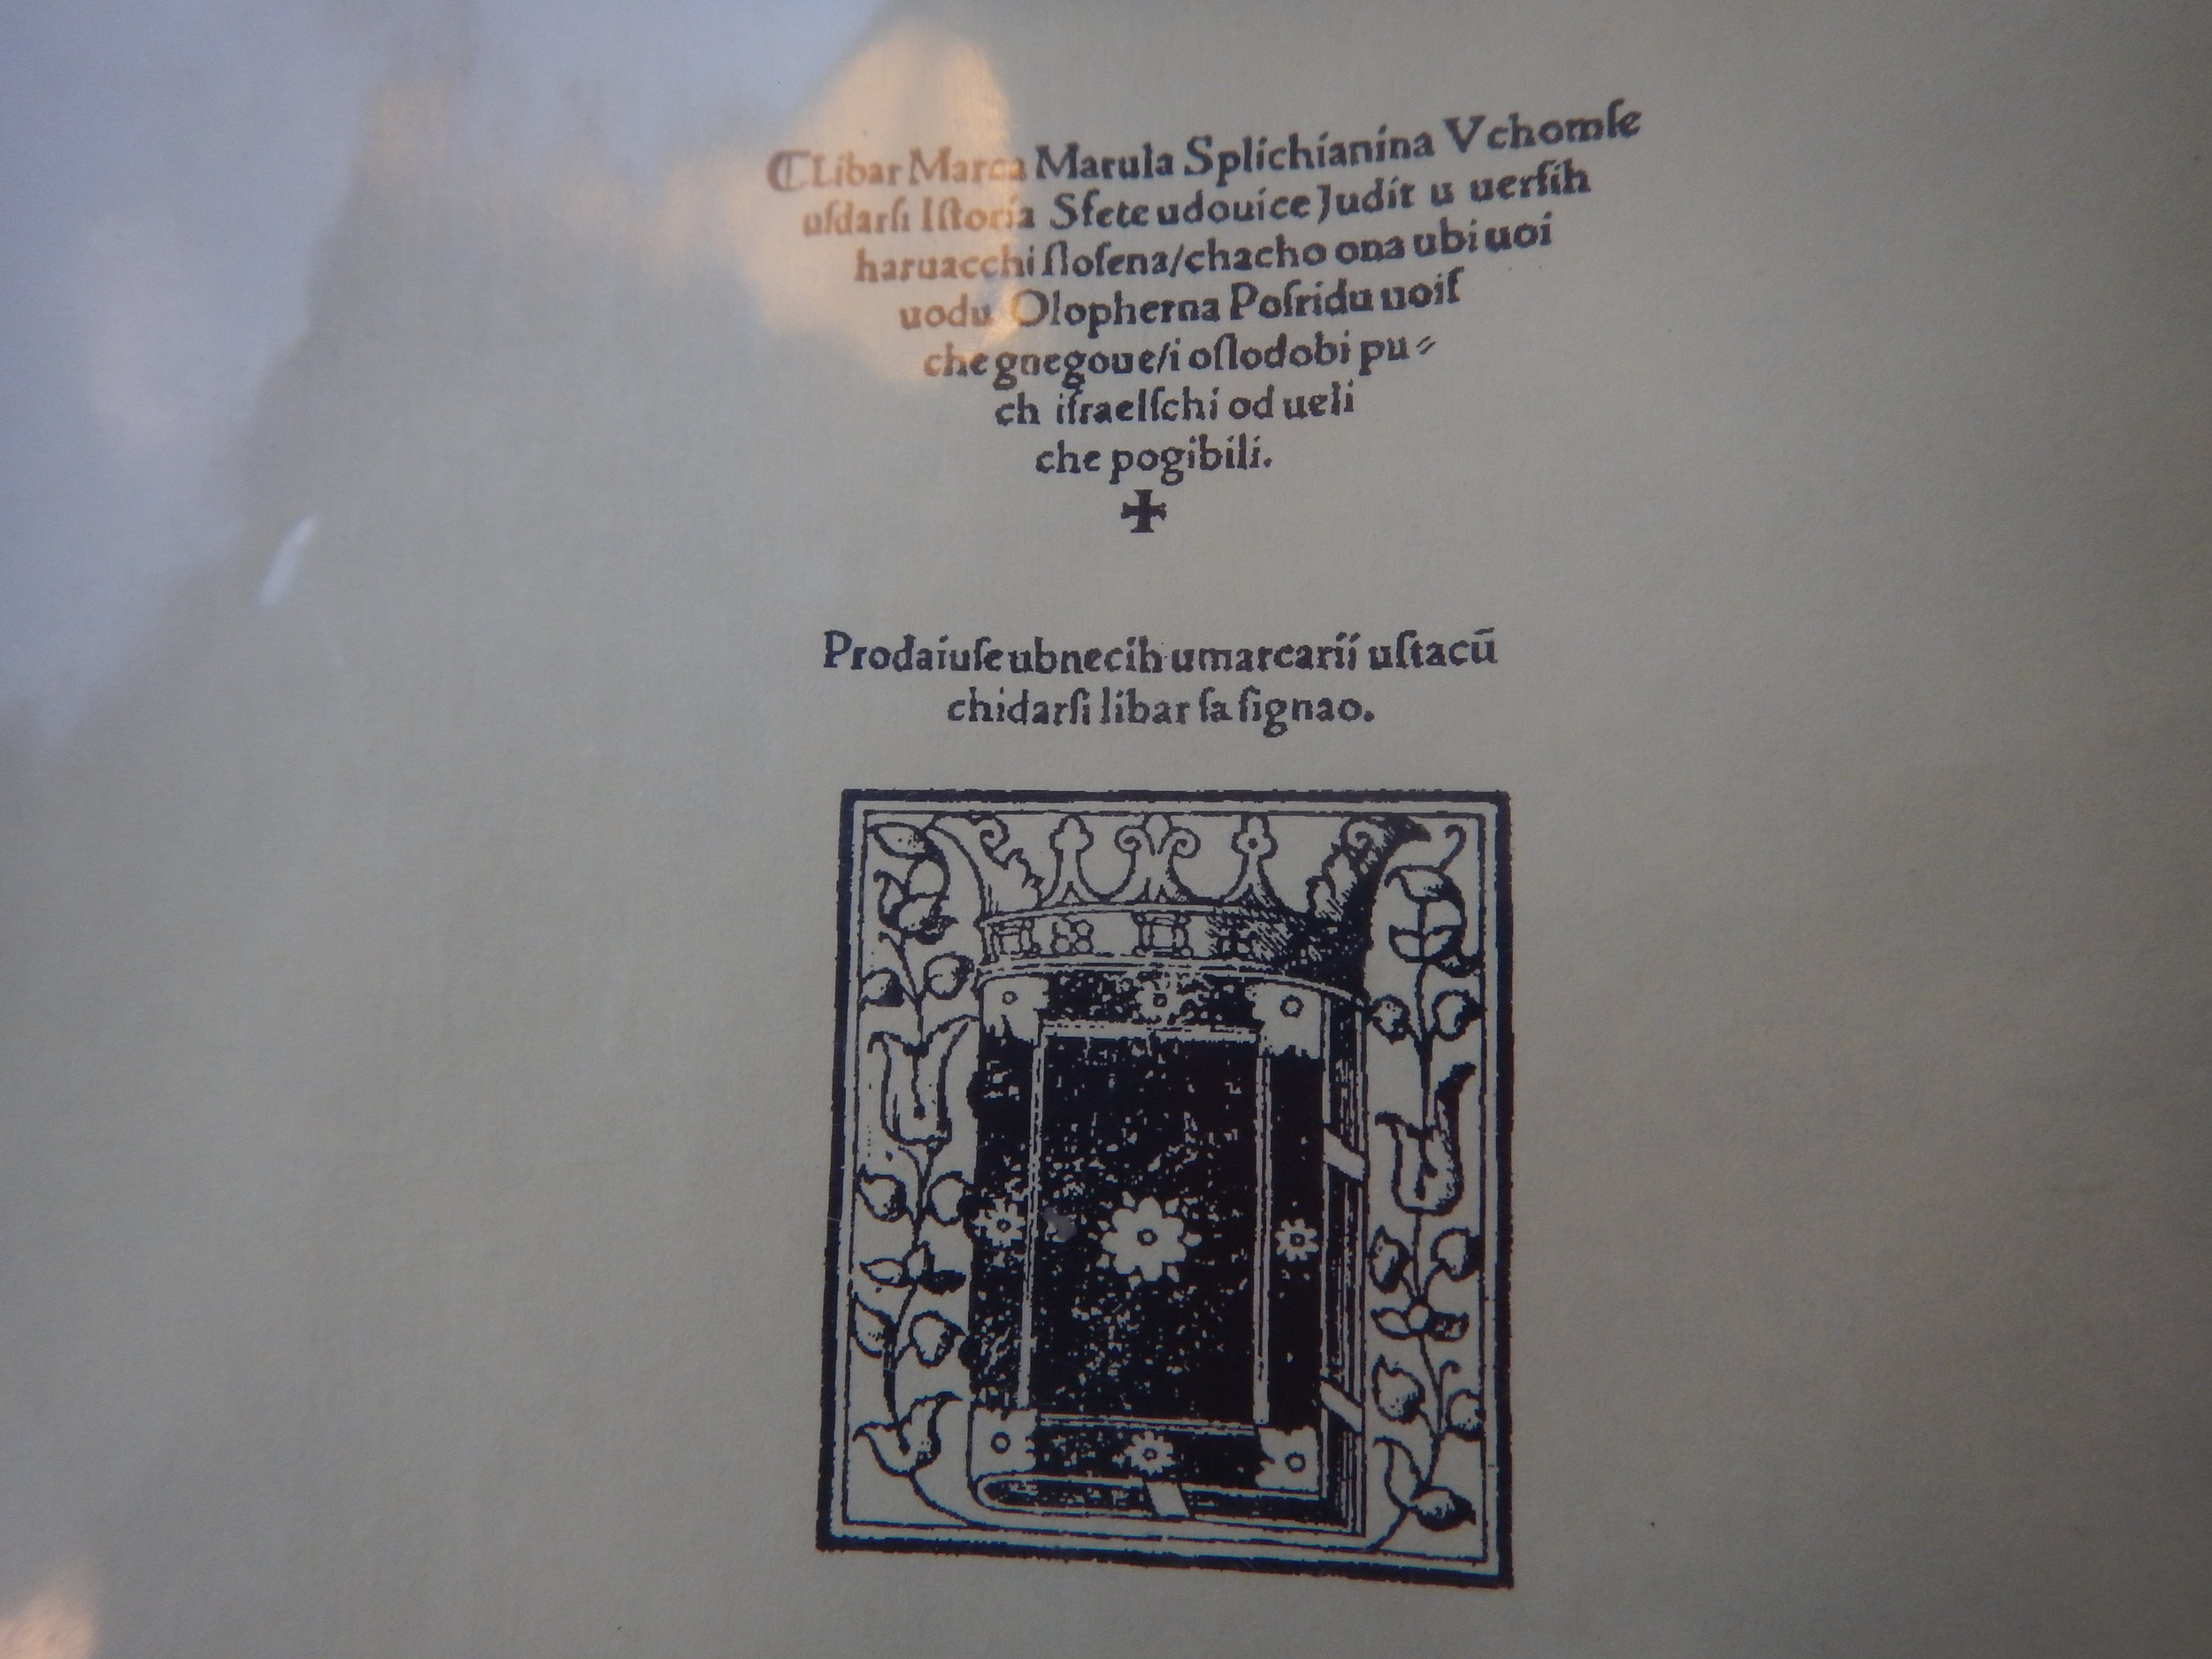 Libar is an old Croatian word which means ' a book'. This is he front page of the first literary work ever written in Croatian language. The first line translates, this book is written by Marko Marulic, a man from Split. The story was titled Judita.